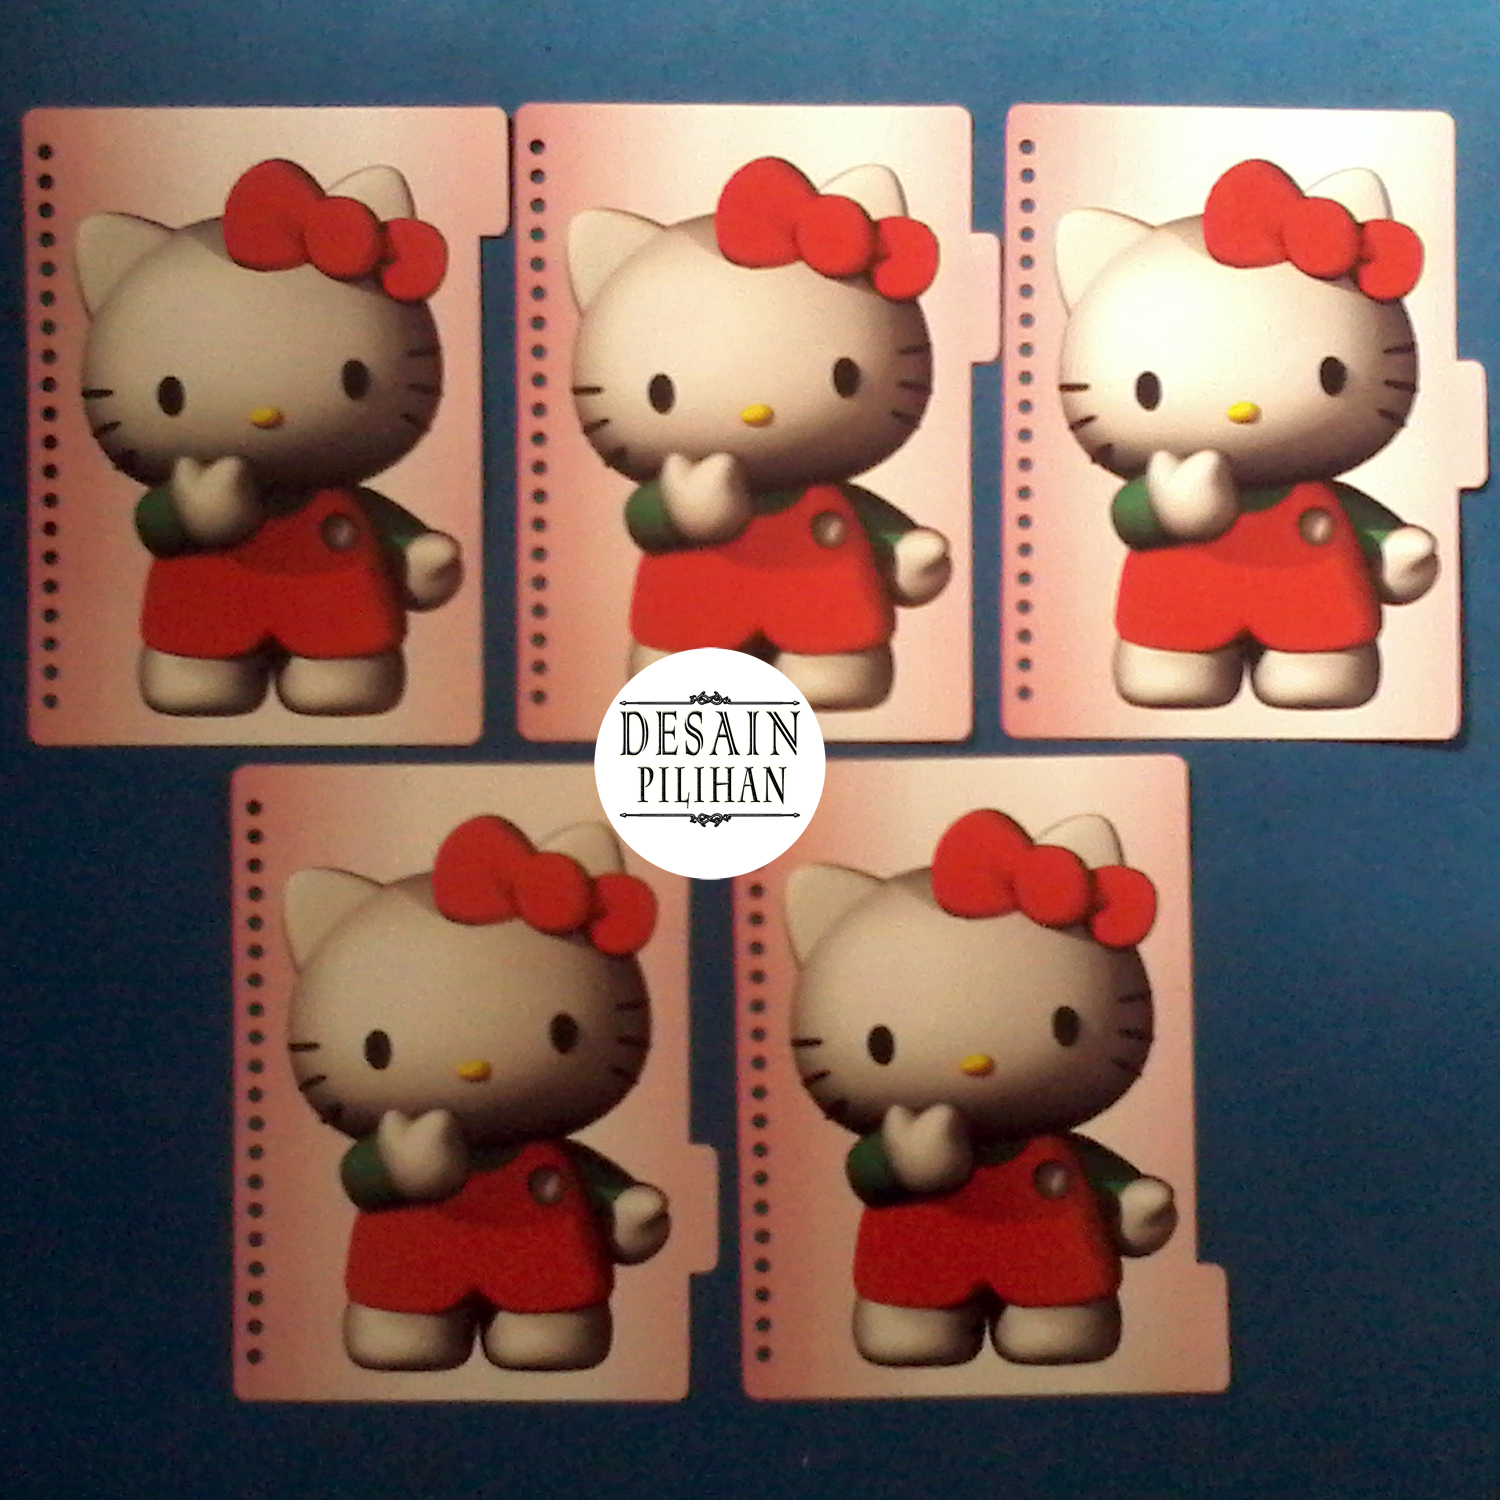 PEMBATAS BINDER, PEMBATAS BINDER CUSTOM HELLO KITTY